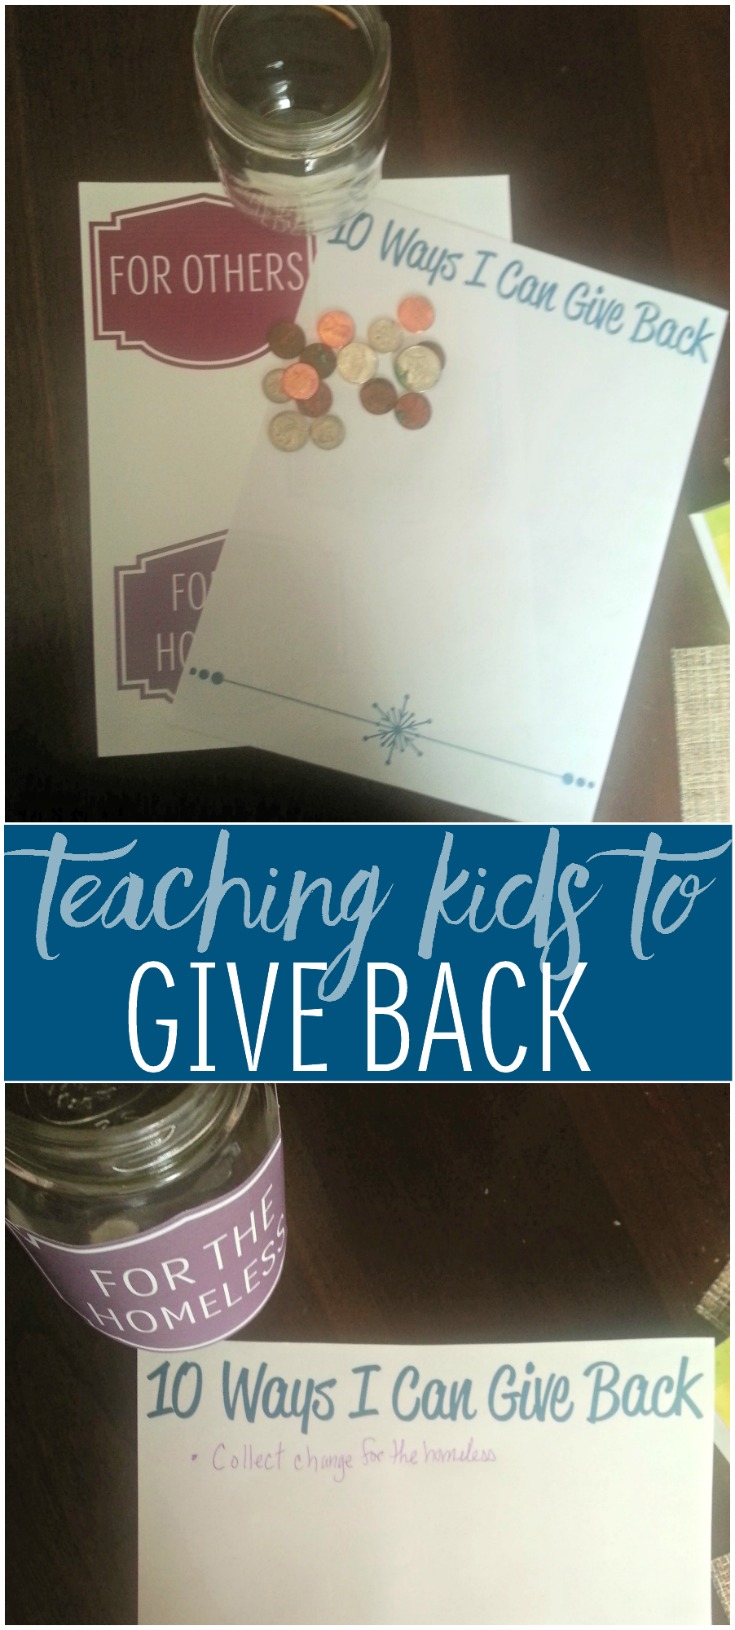 Will you join Walmart and @CocaCola and #Give Happiness this year? They're making it easy to teach your kids to give back AD